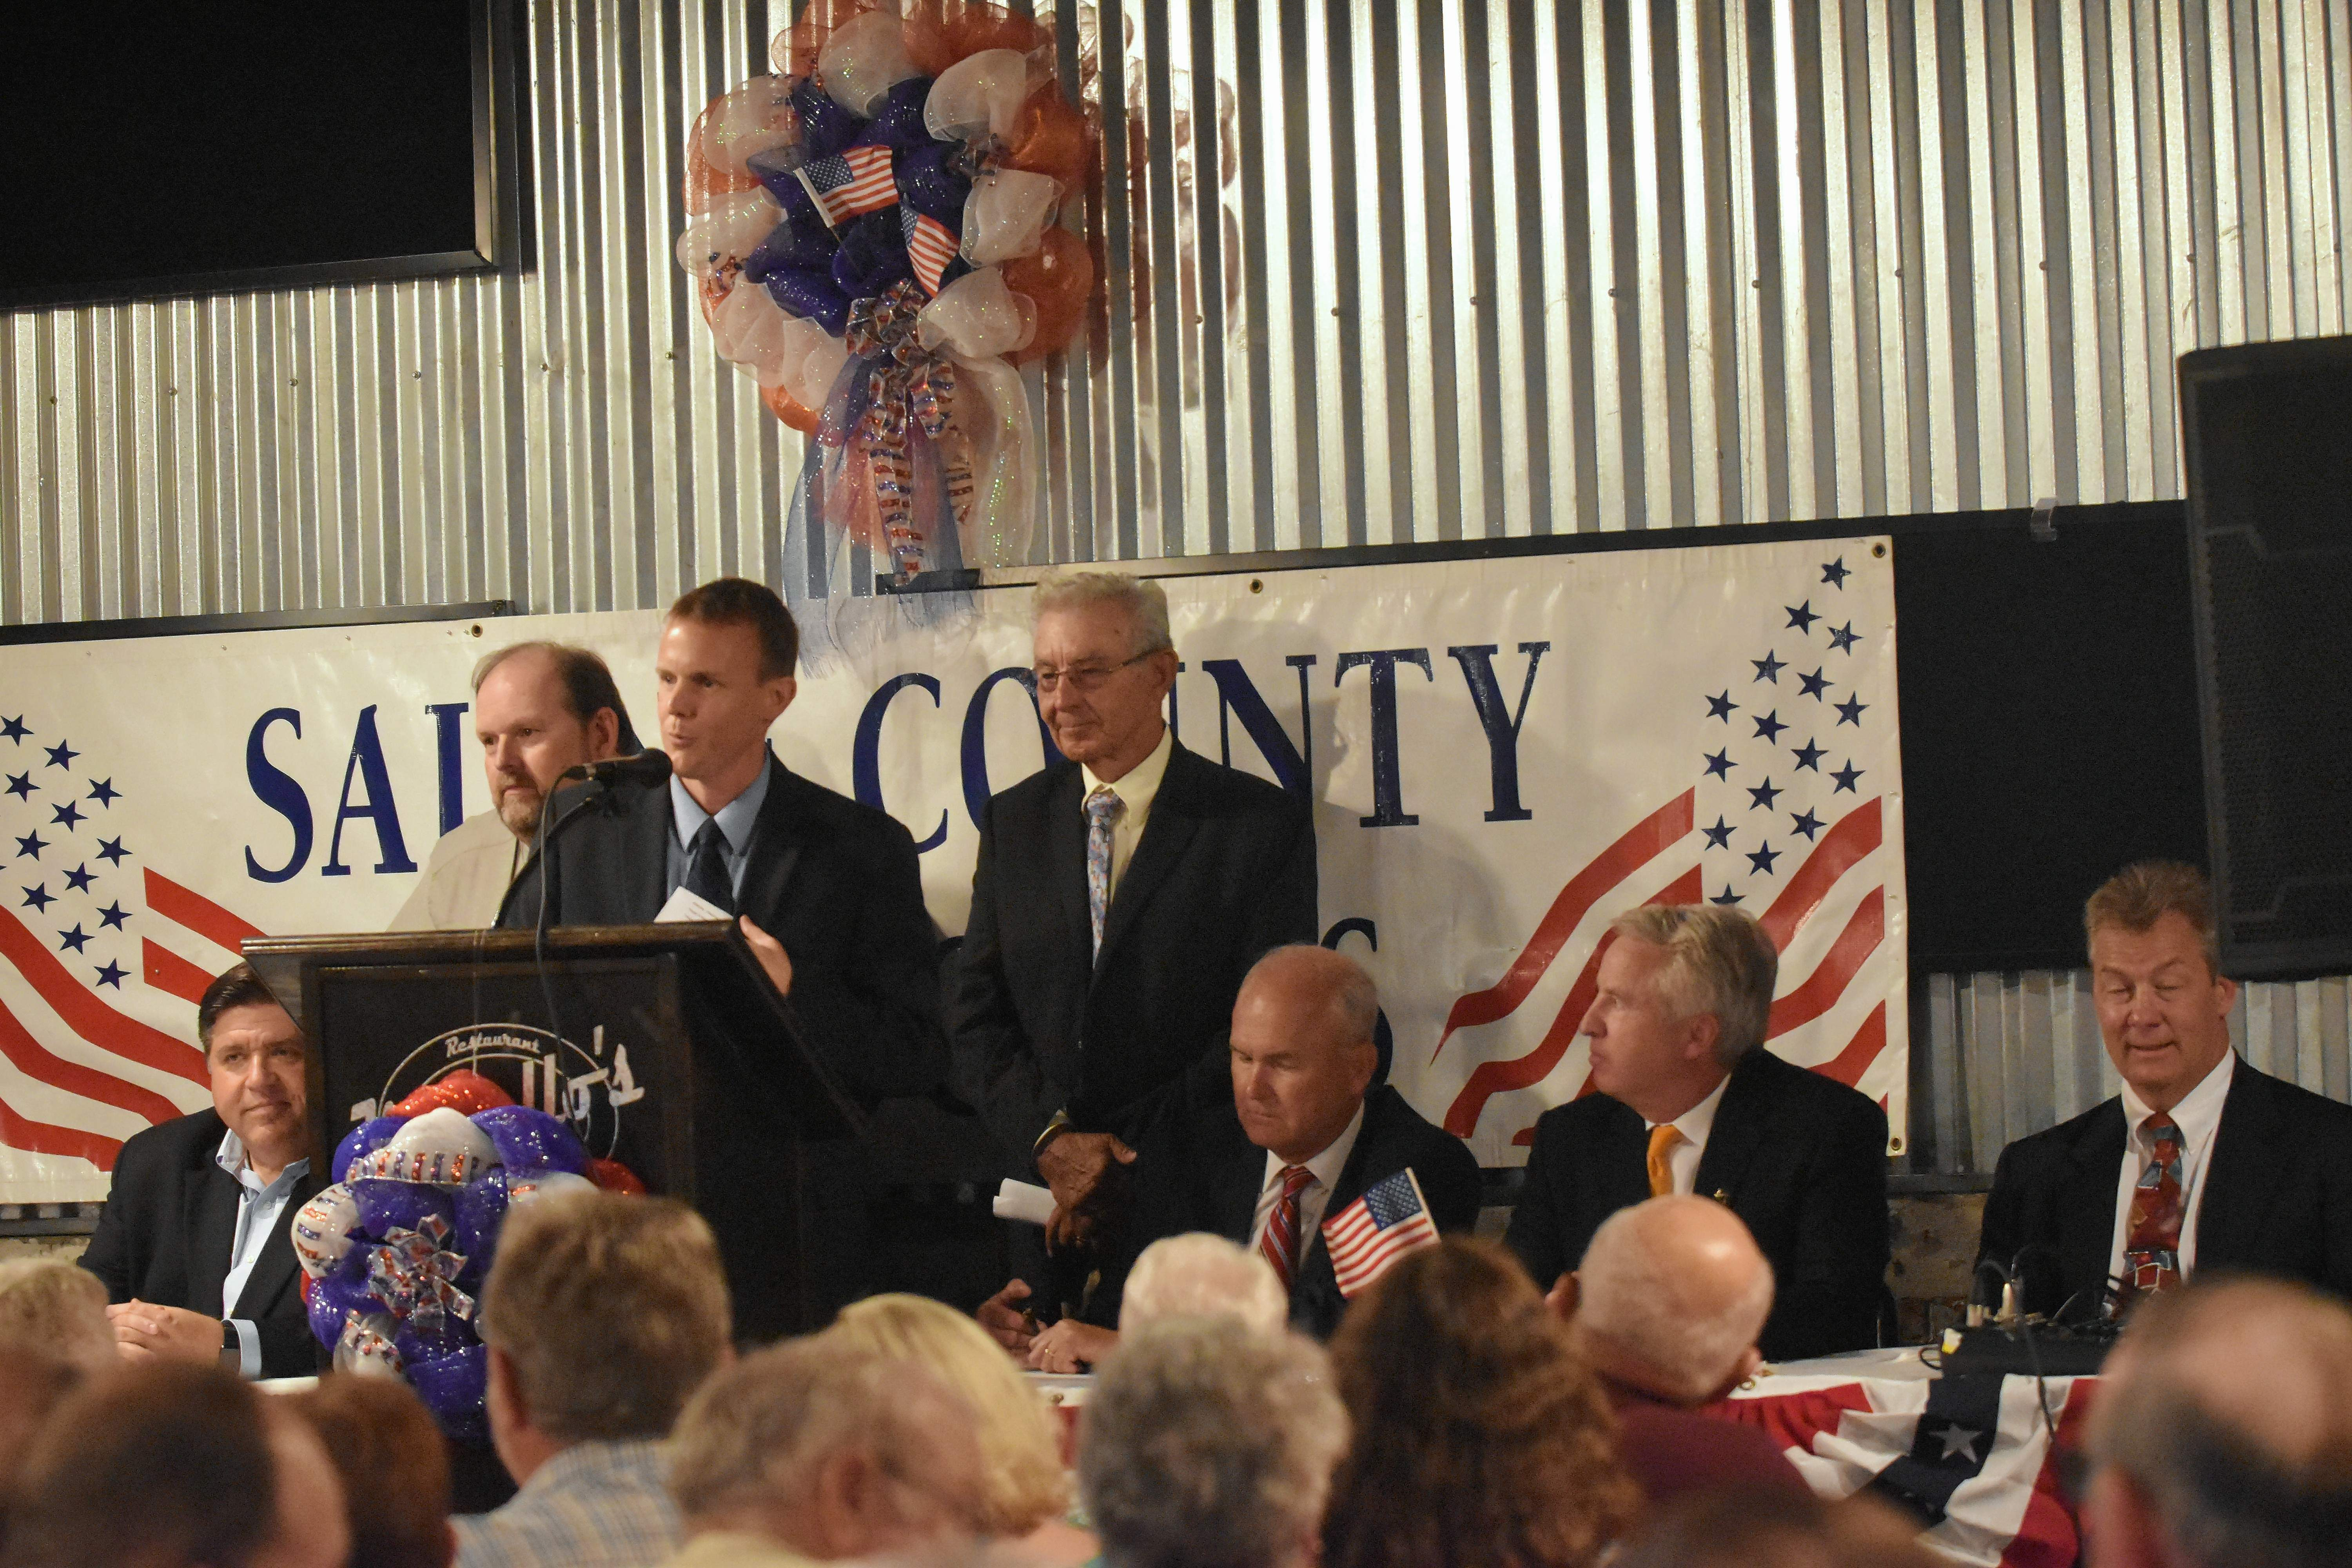 Saline County State's Attorney Jayson Clark speaks at the county Democrats' forum for gubernatorial candidates Saturday night at Morello's Restaurant in Harrisburg. From left are J.B. Pritzker, Saline County Democrat Bruce Tolley, Clark, Saline County Democrat Central Committee President Bob Oglesby, Bob Daiber, Chris Kennedy and congressional candidate Carl Spoerer.